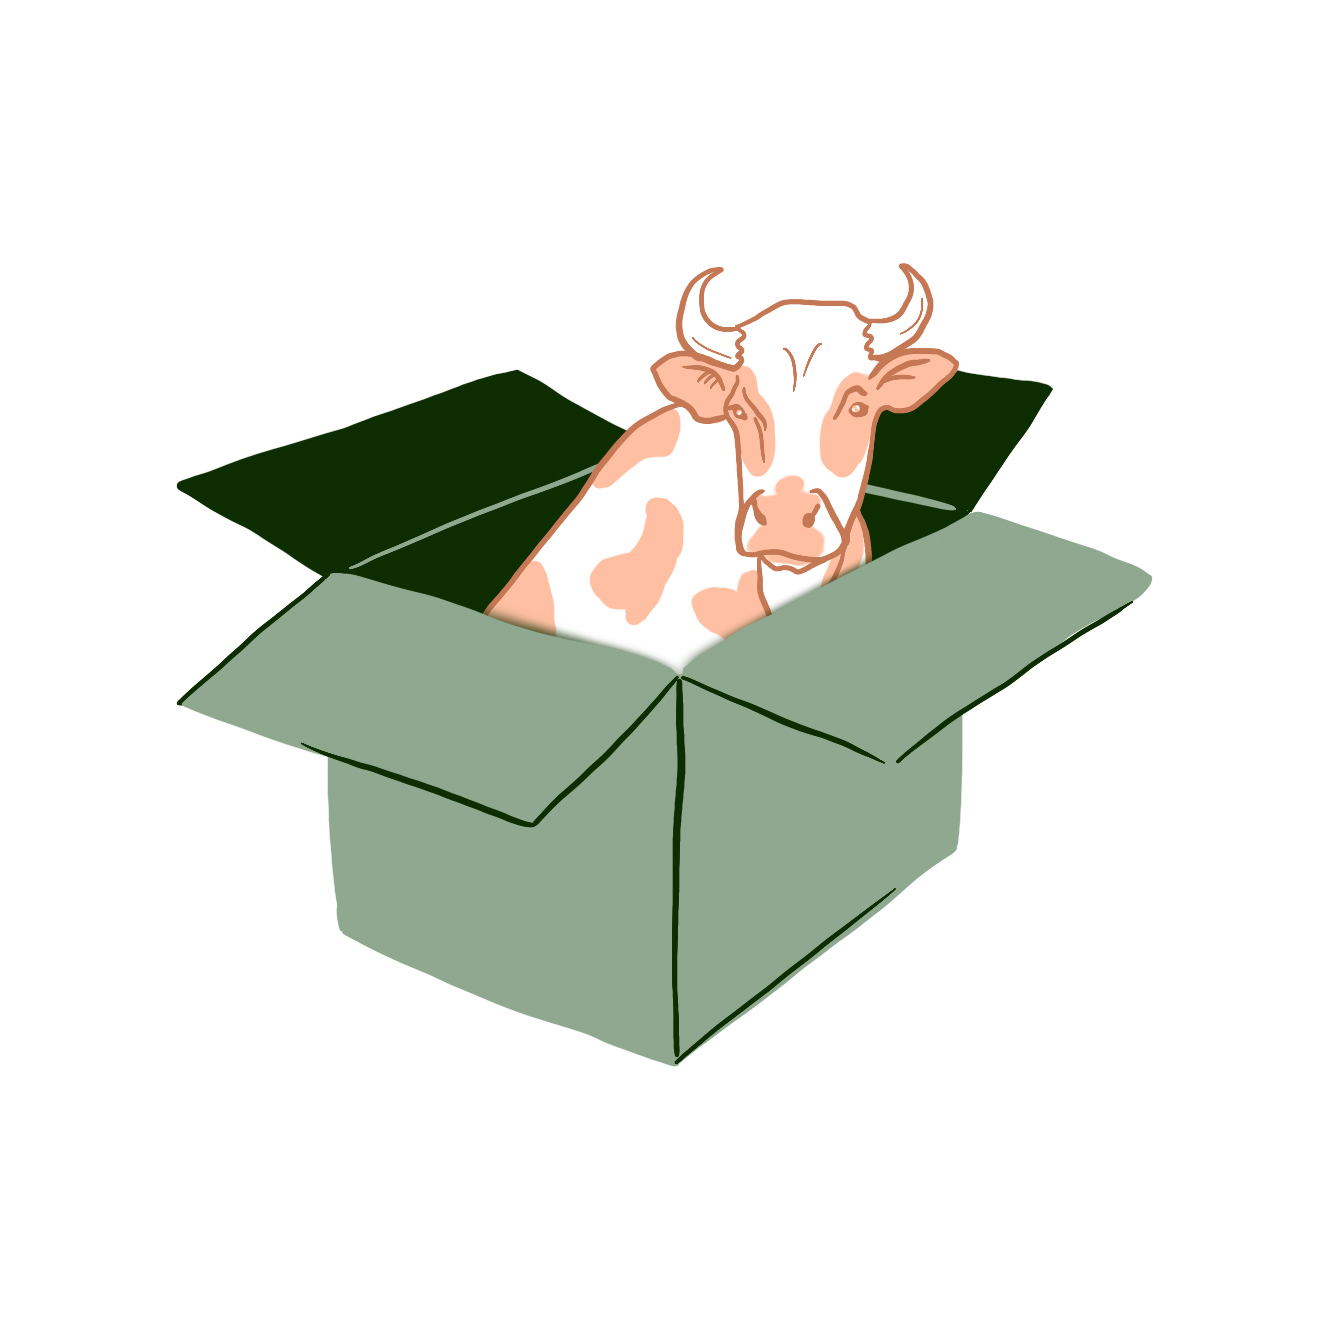 points-of-measure-resources-butcher-box.jpg